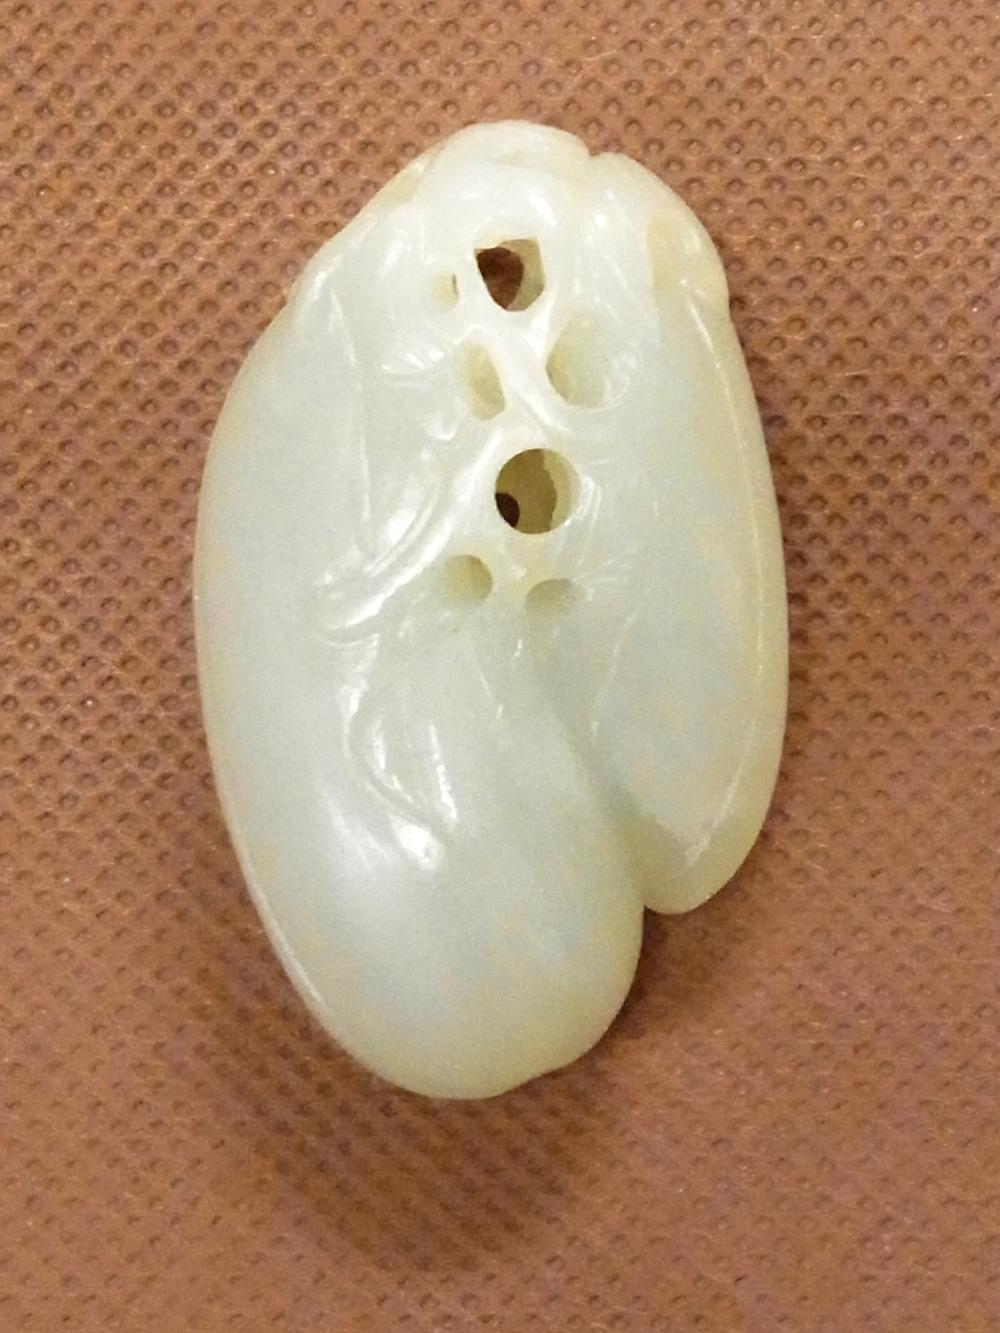 161ct Muttonfat Jade Antique Carved Pale Jadeite Chinese Pear Eggplant Fruit Amulet or Pendant